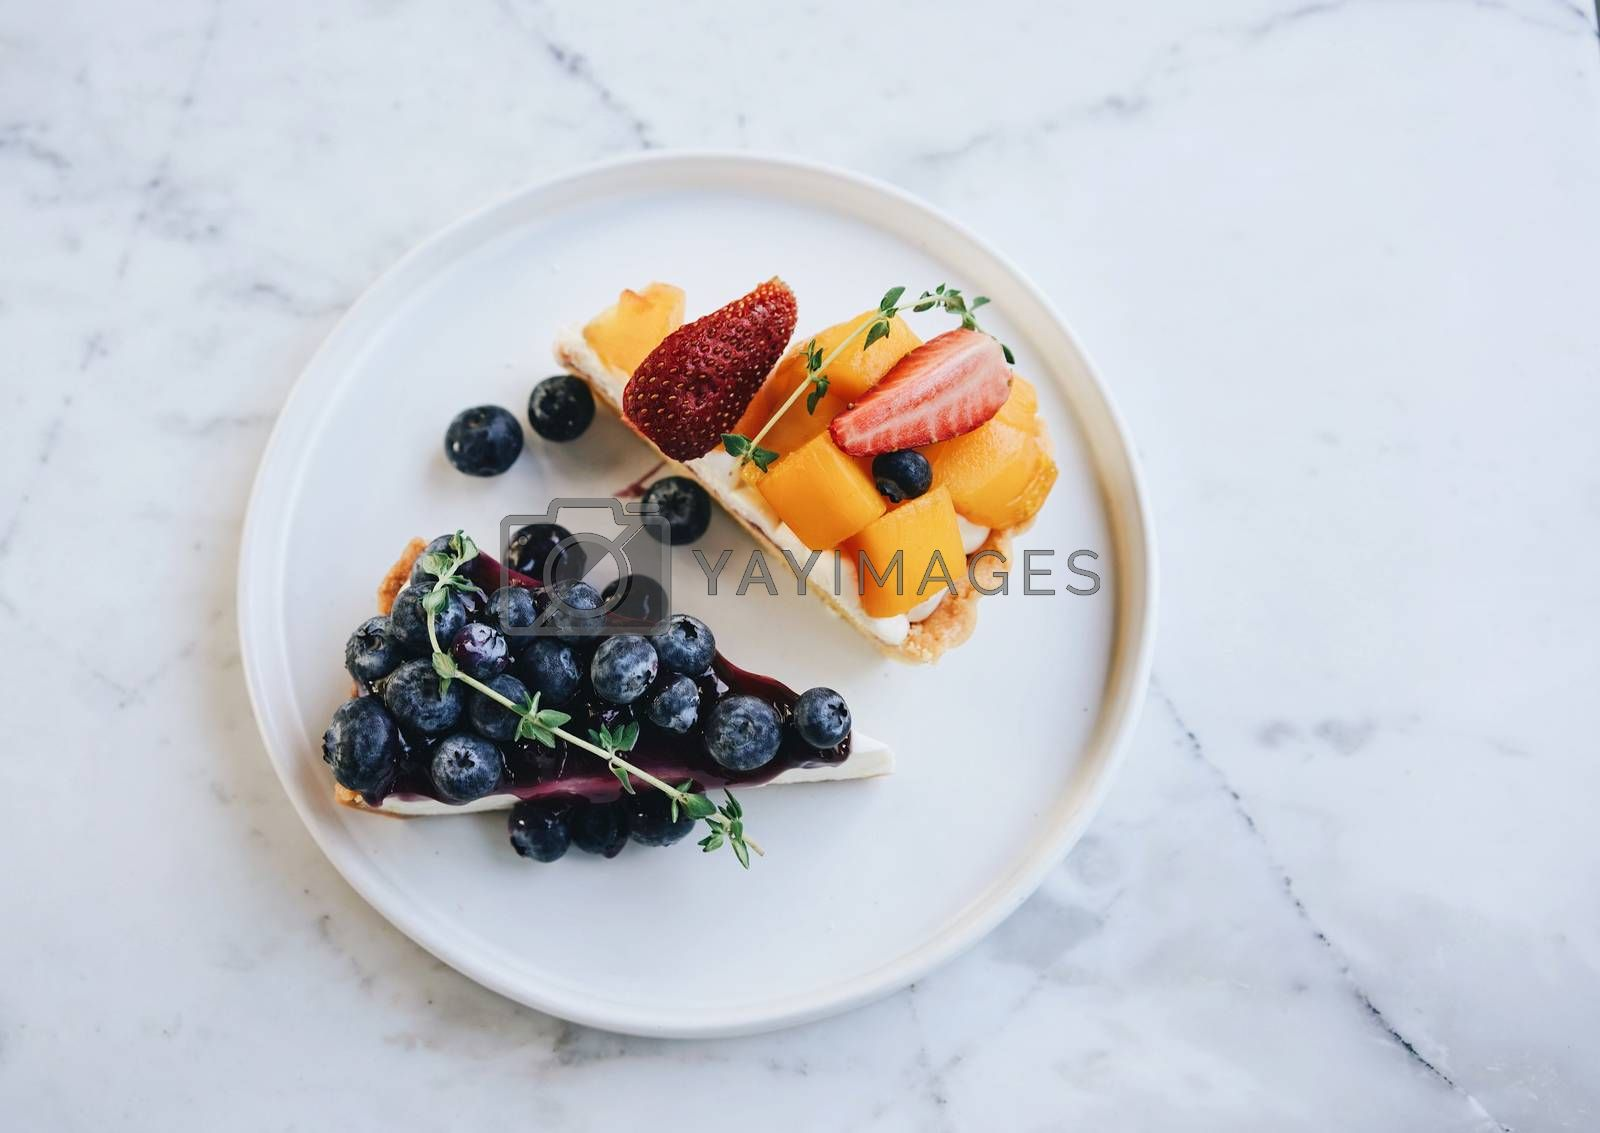 Tasty blueberry pie and mango with strawberry tart on white marble table background, homemade bakery style